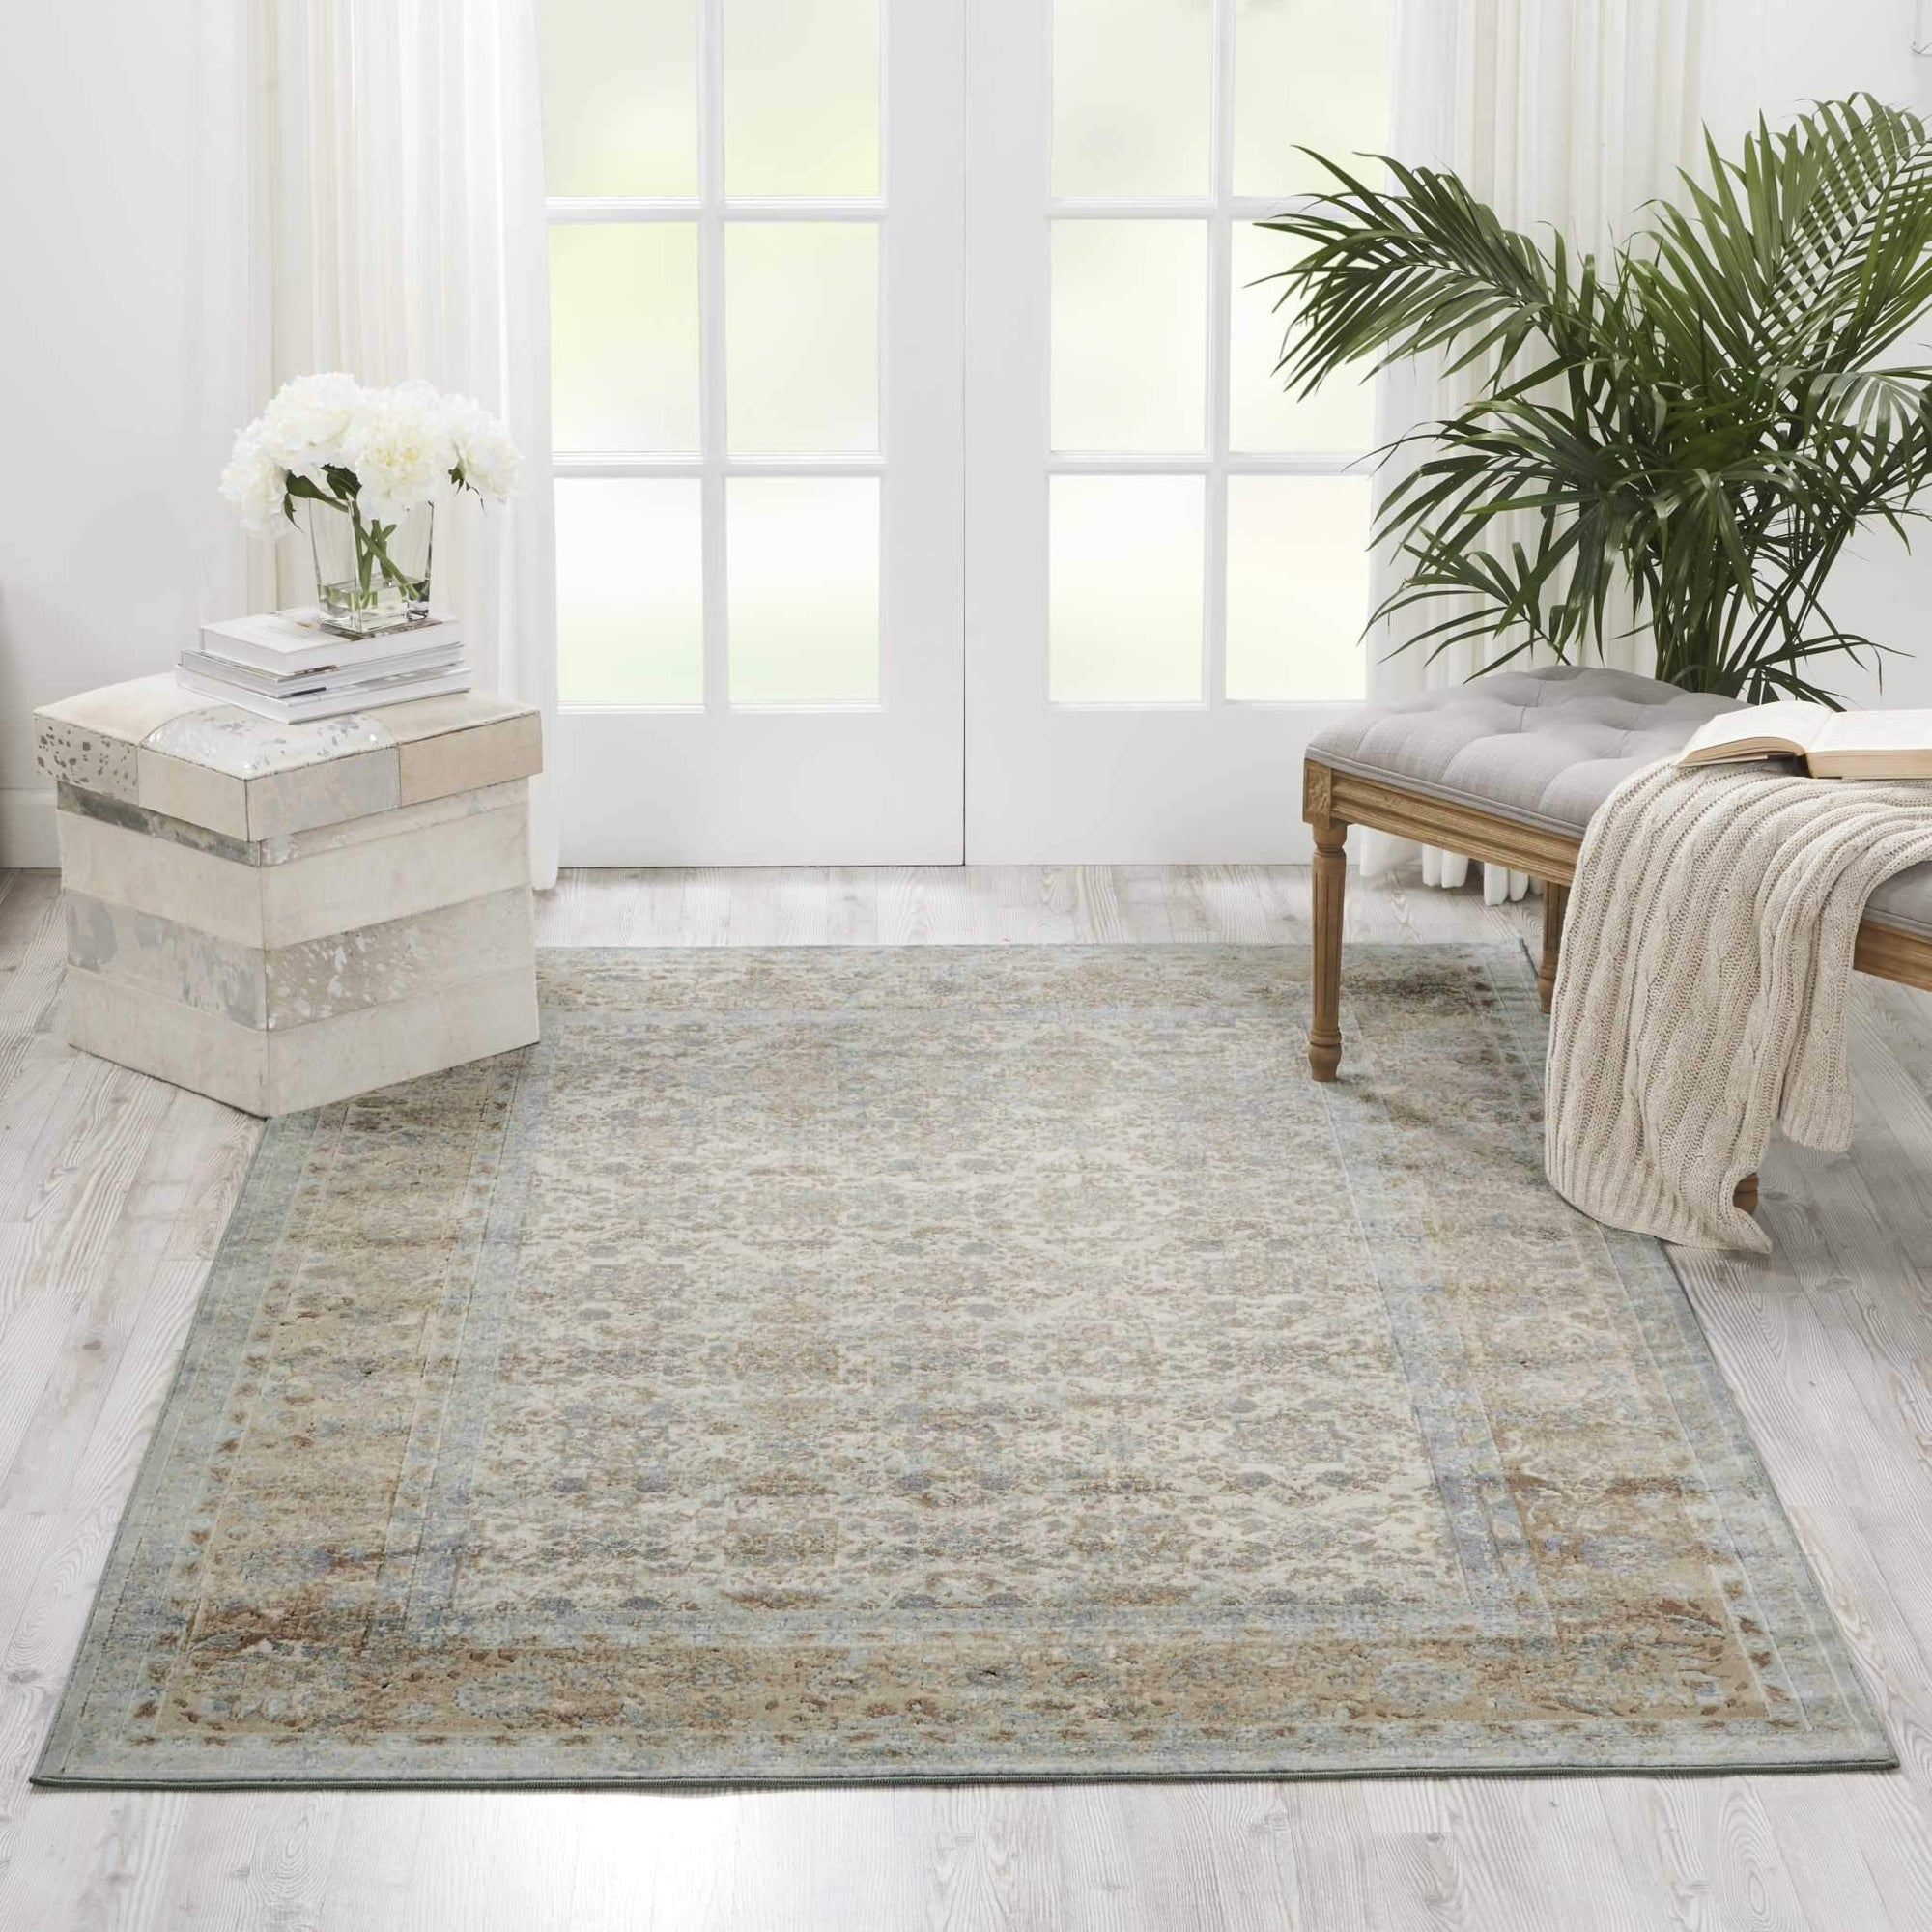 "kathy ireland HOME Malta Slate Area Rug-Area Rug-kathy ireland HOME-3'11"" x 5'7""-The Rug Truck"